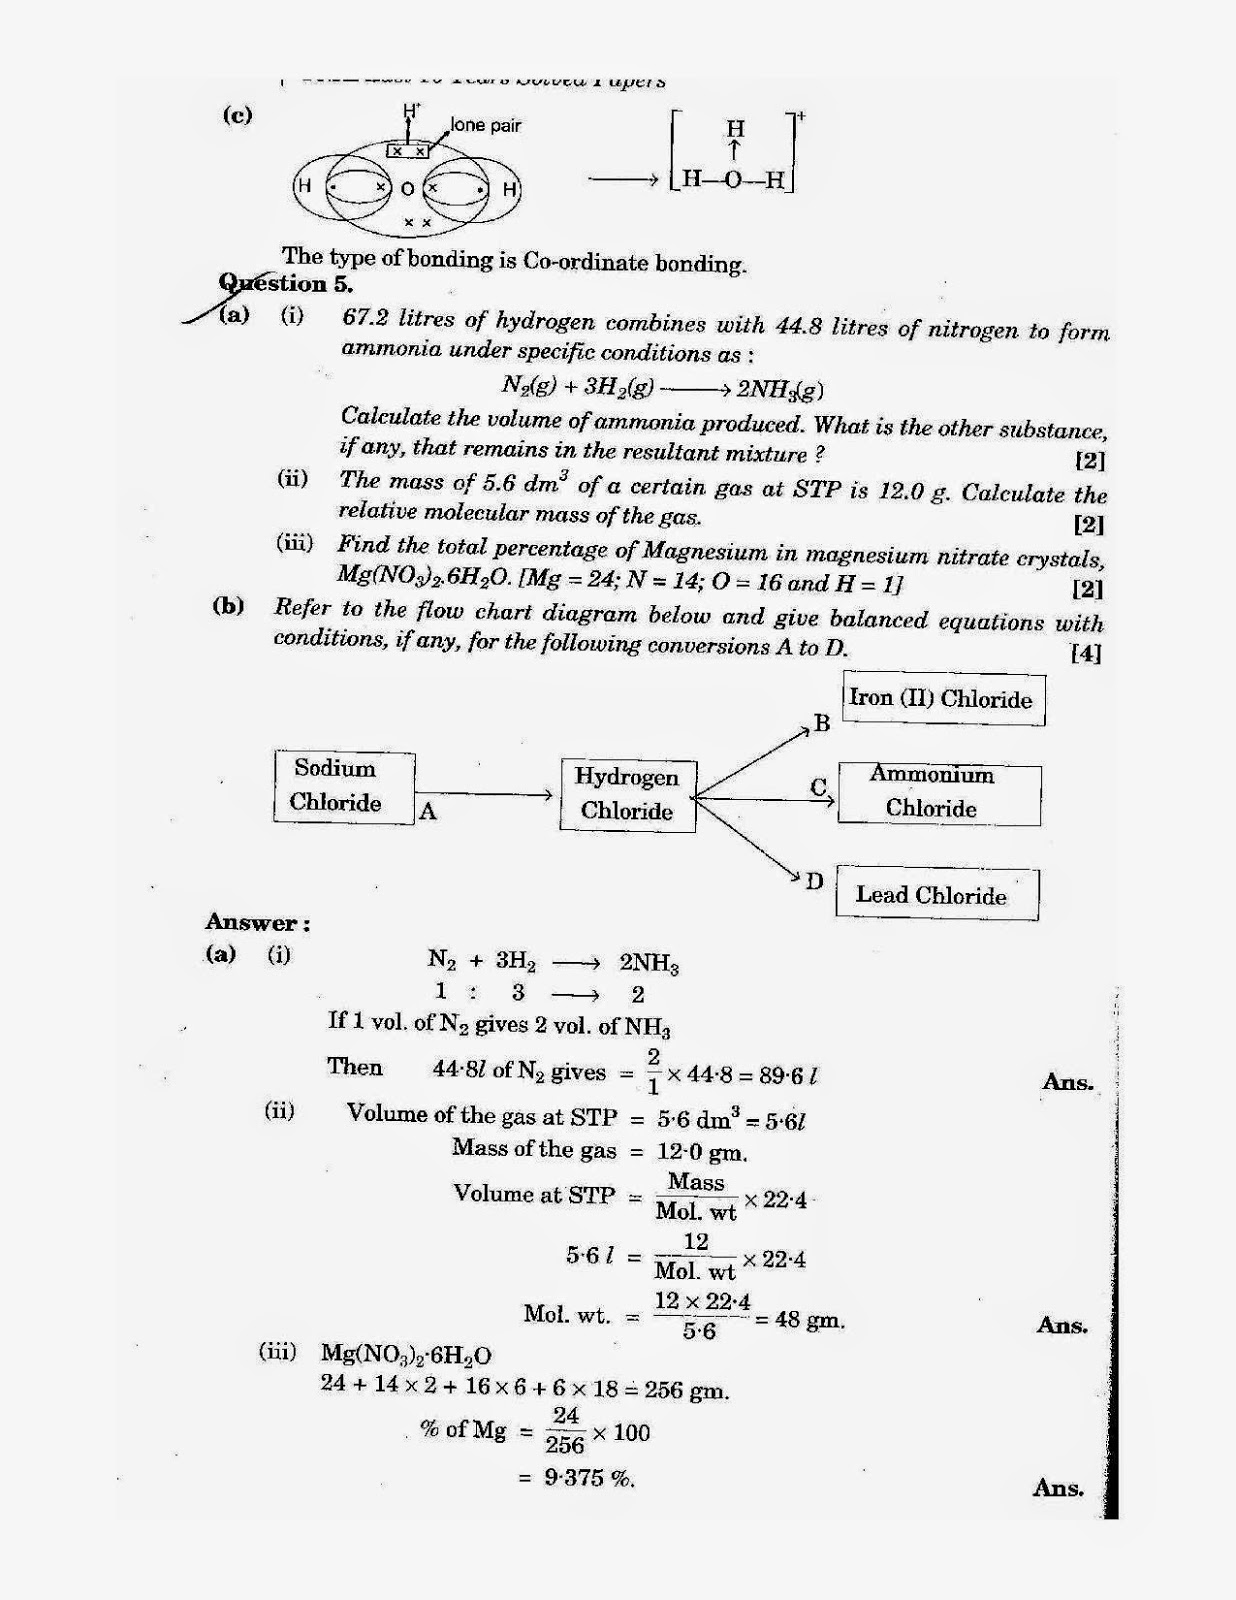 icse class 10th chemistry solved question paper 2011